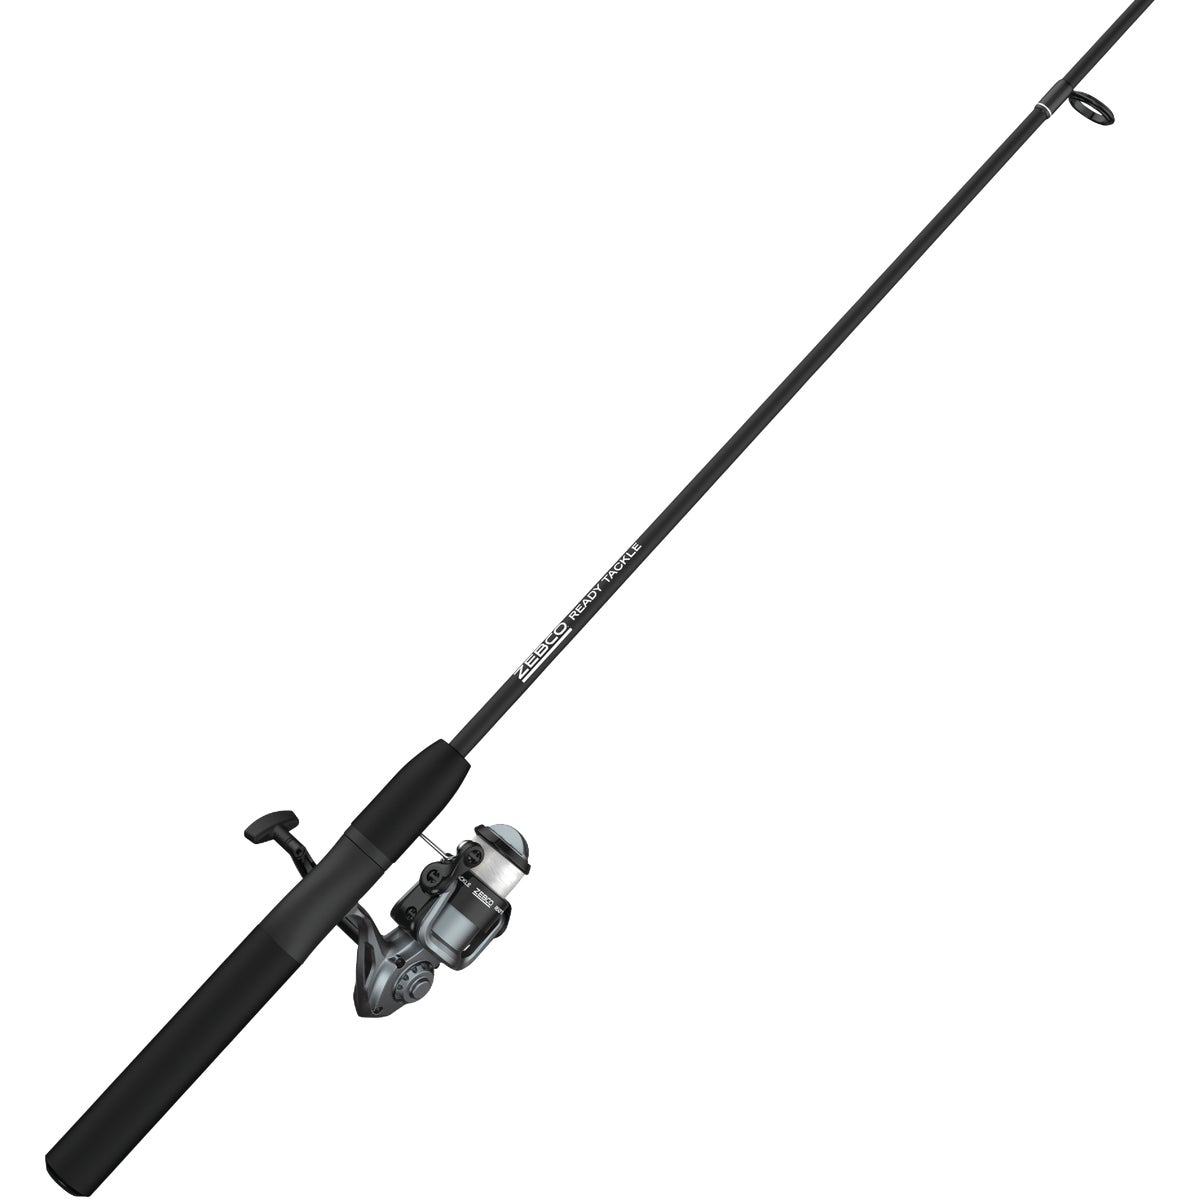 8LB SPINNING ROD & REEL - RTSPKG by Zebco